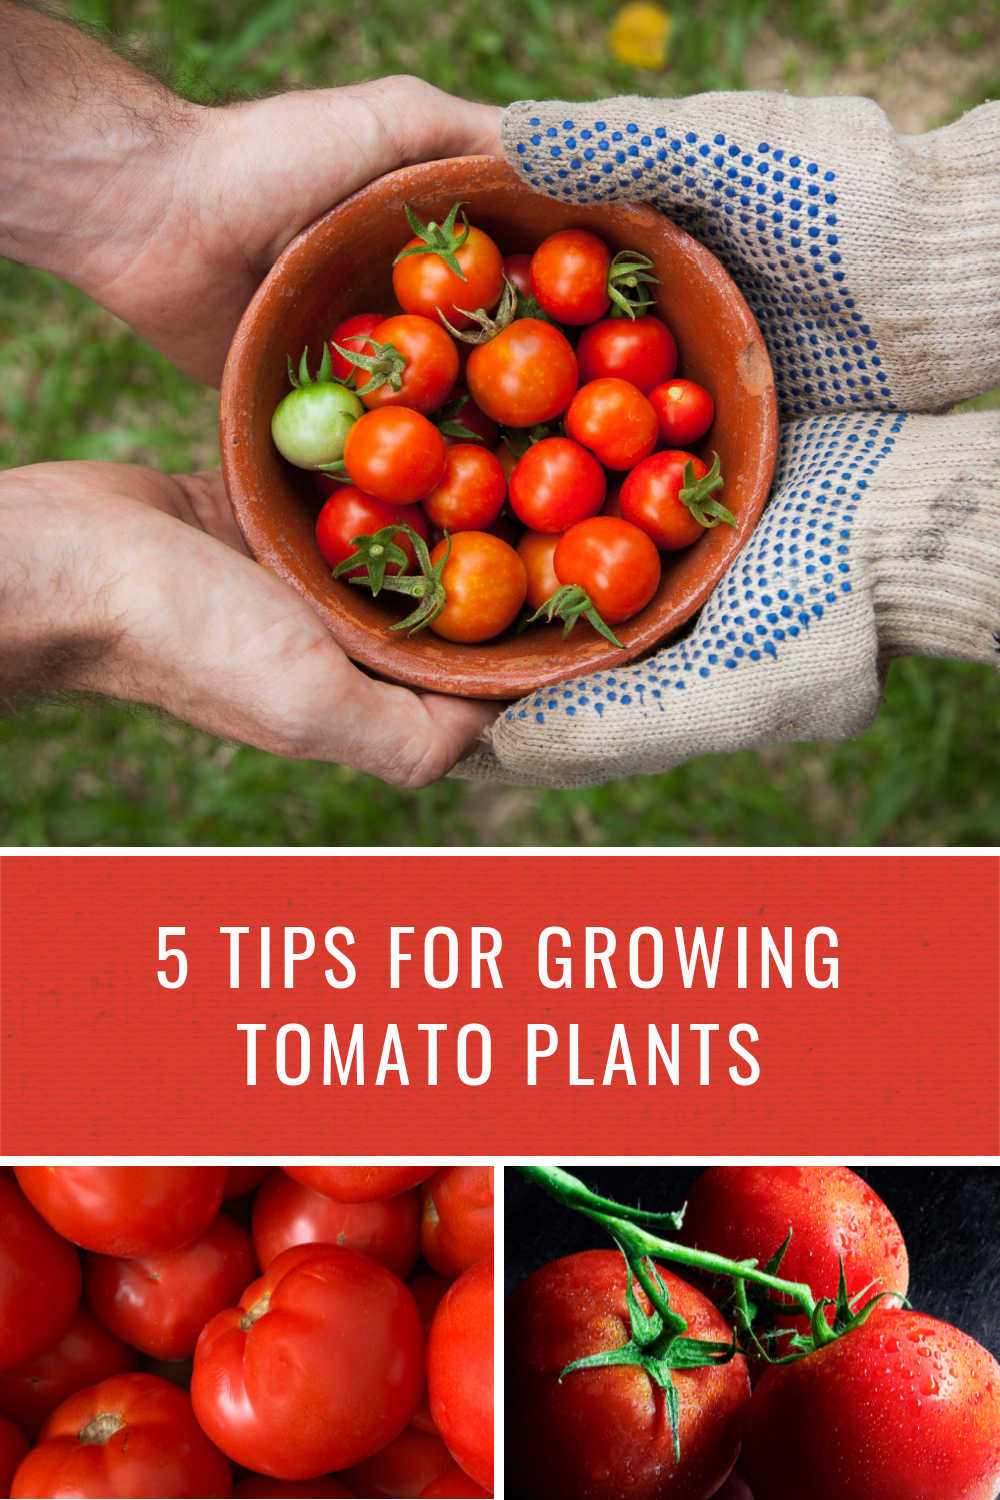 TIPS FOR GROWING TOMATO PLANTS